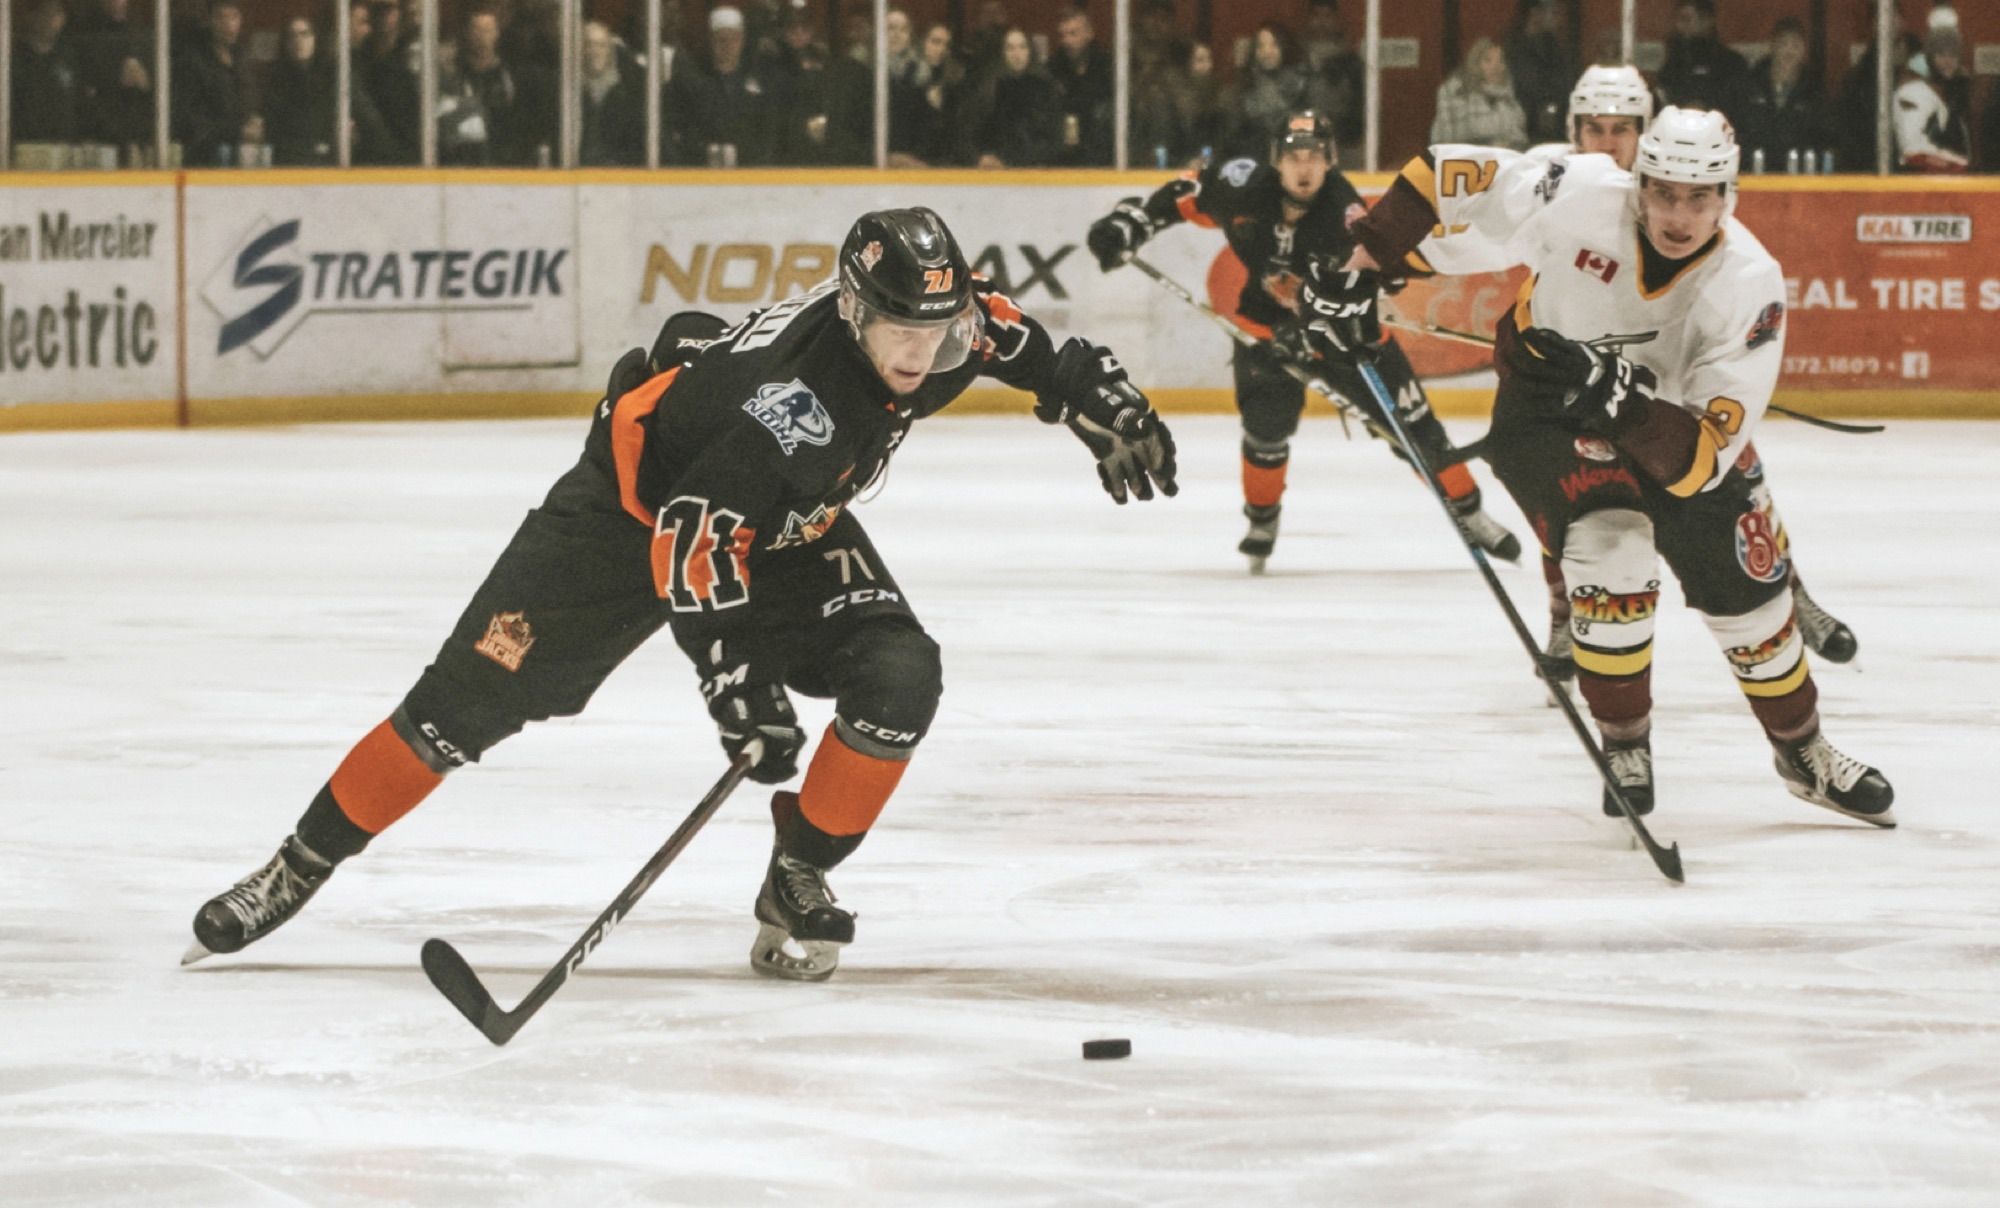 Brandonite Dawson Waddell, left, has carved out a niche for himself with the Hearst Lumberjacks in the Northern Ontario Junior Hockey League after bouncing around different Canadian Junior Hockey League circuits for several seasons.